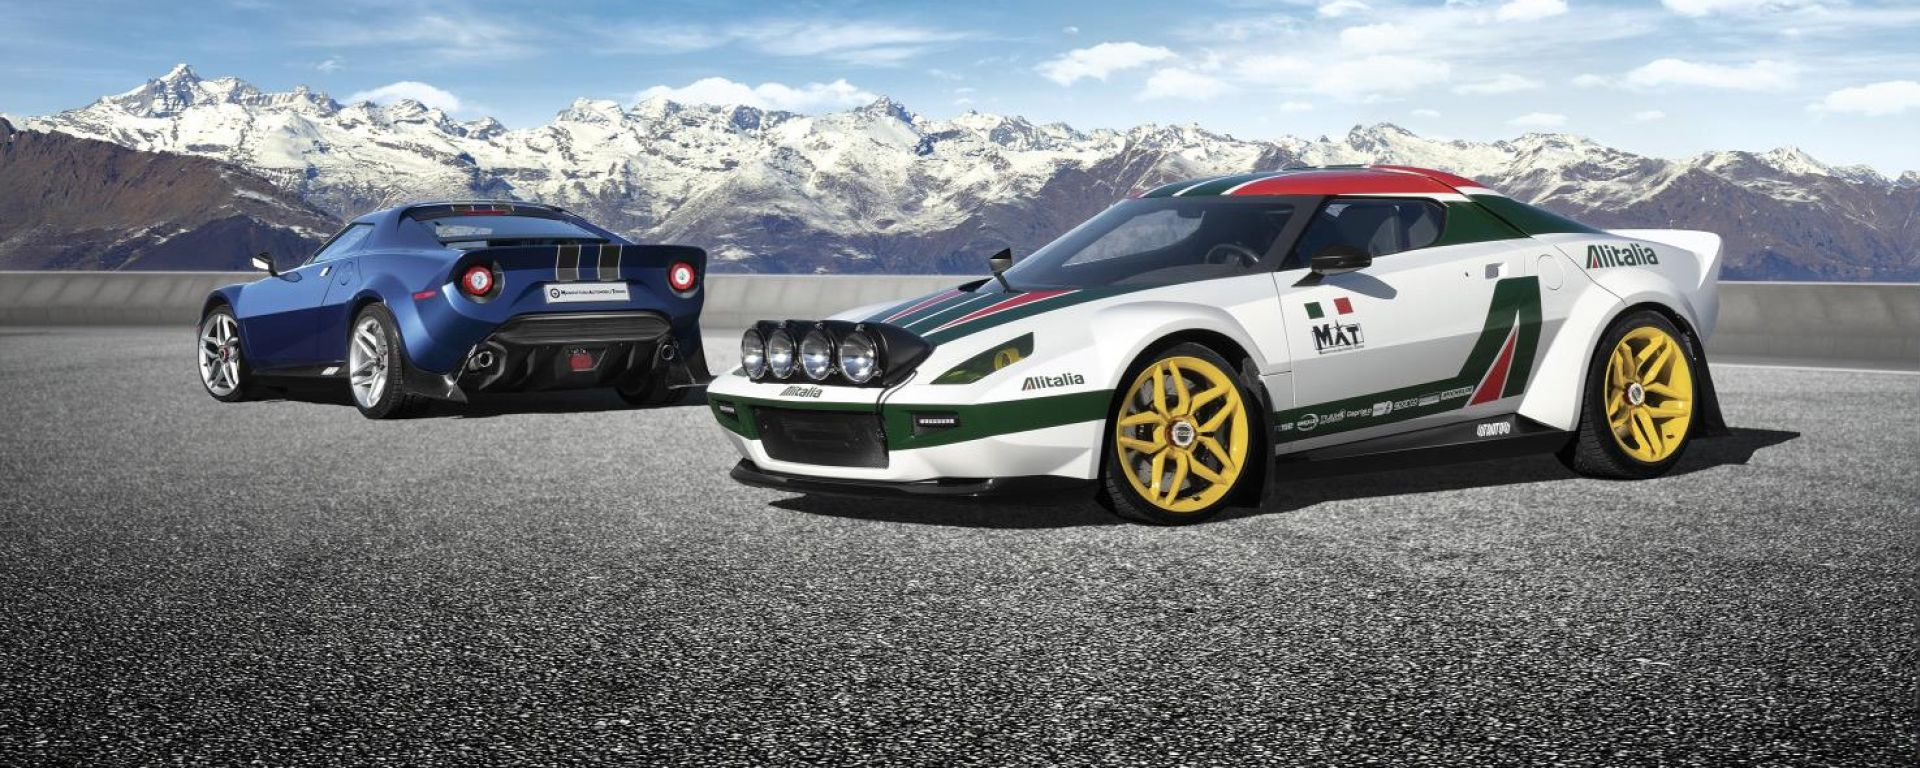 New Stratos by MAT: l'icona rally rivive in una restomod